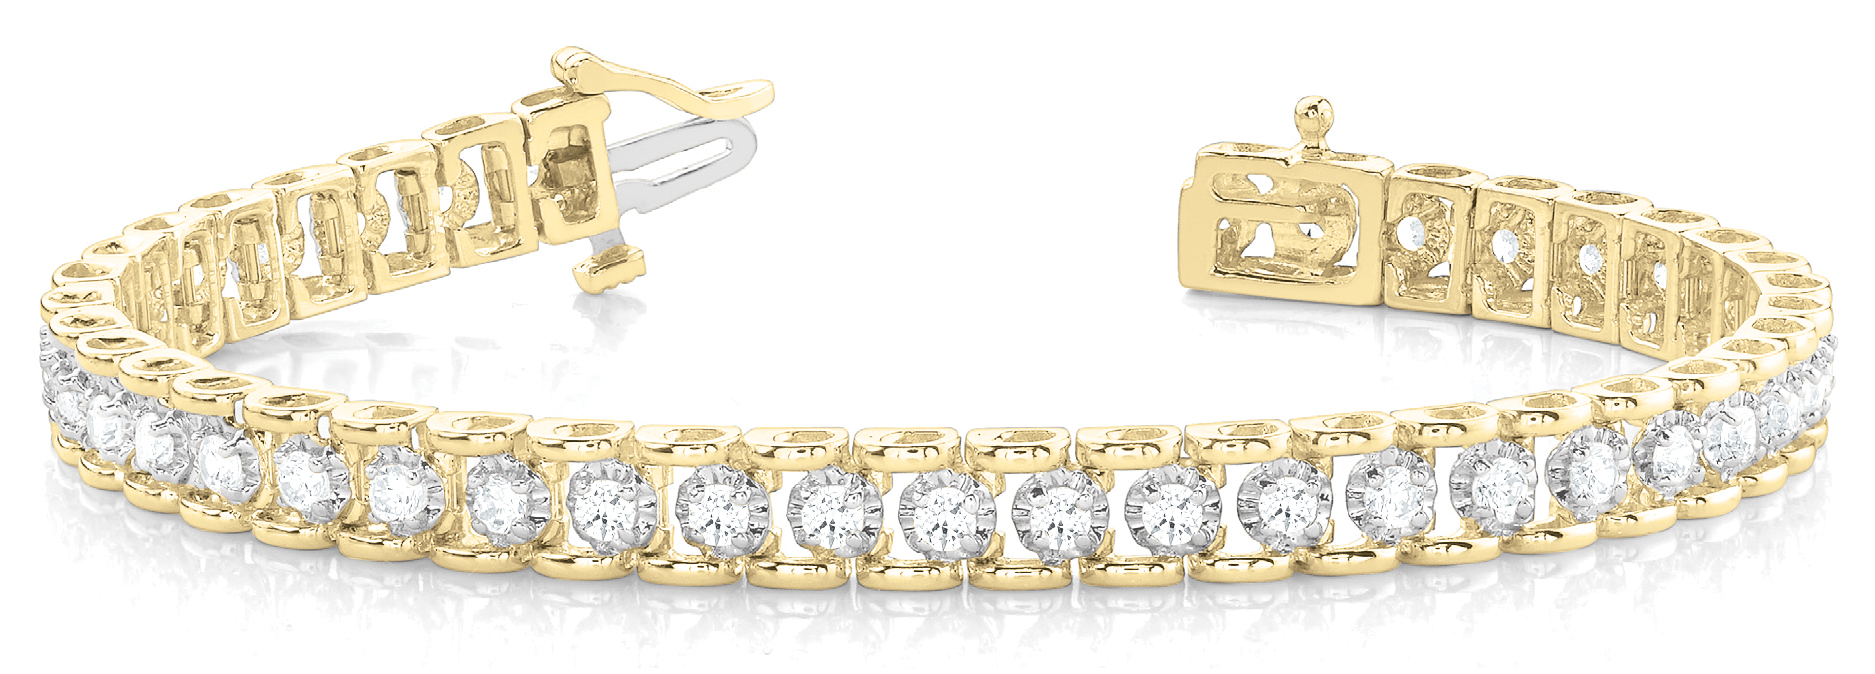 1 Carat Round Diamond Tennis Bracelet Two Tone Gold